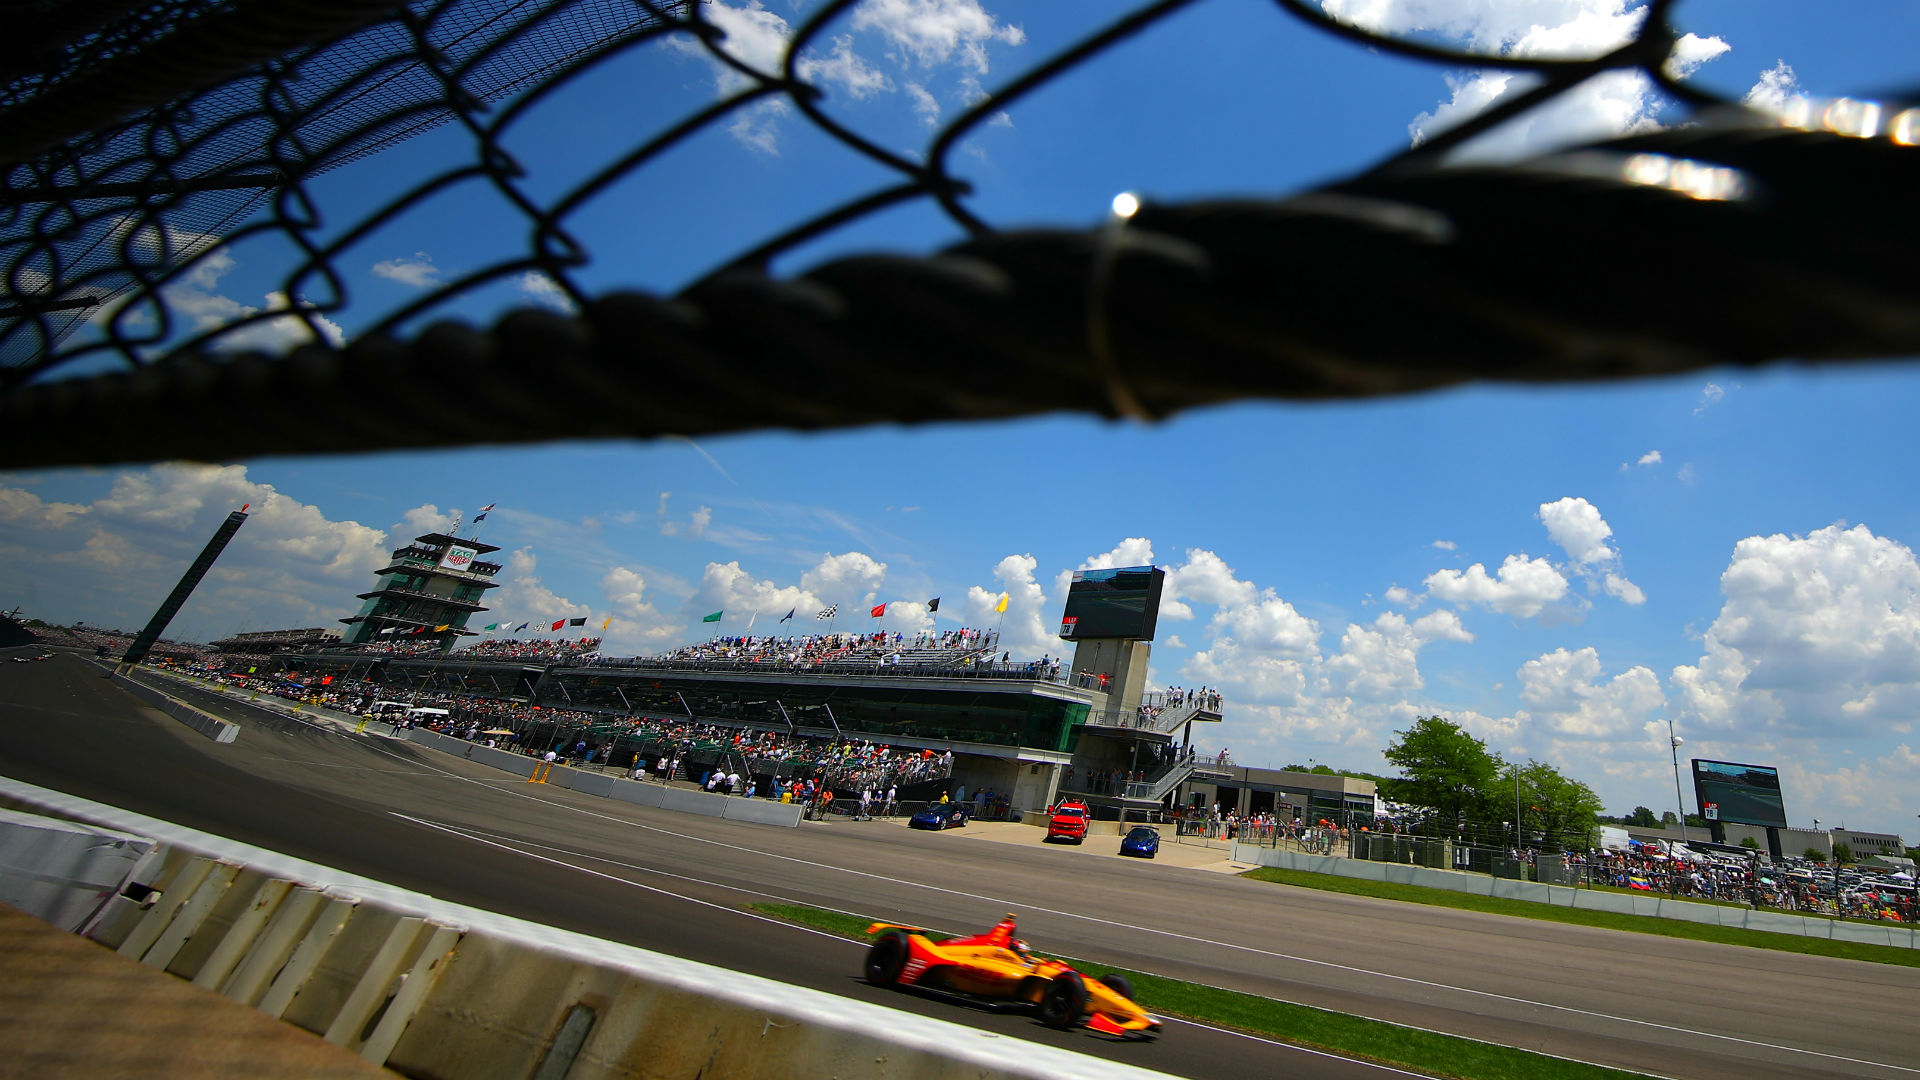 indy 500 qualifying - photo #16